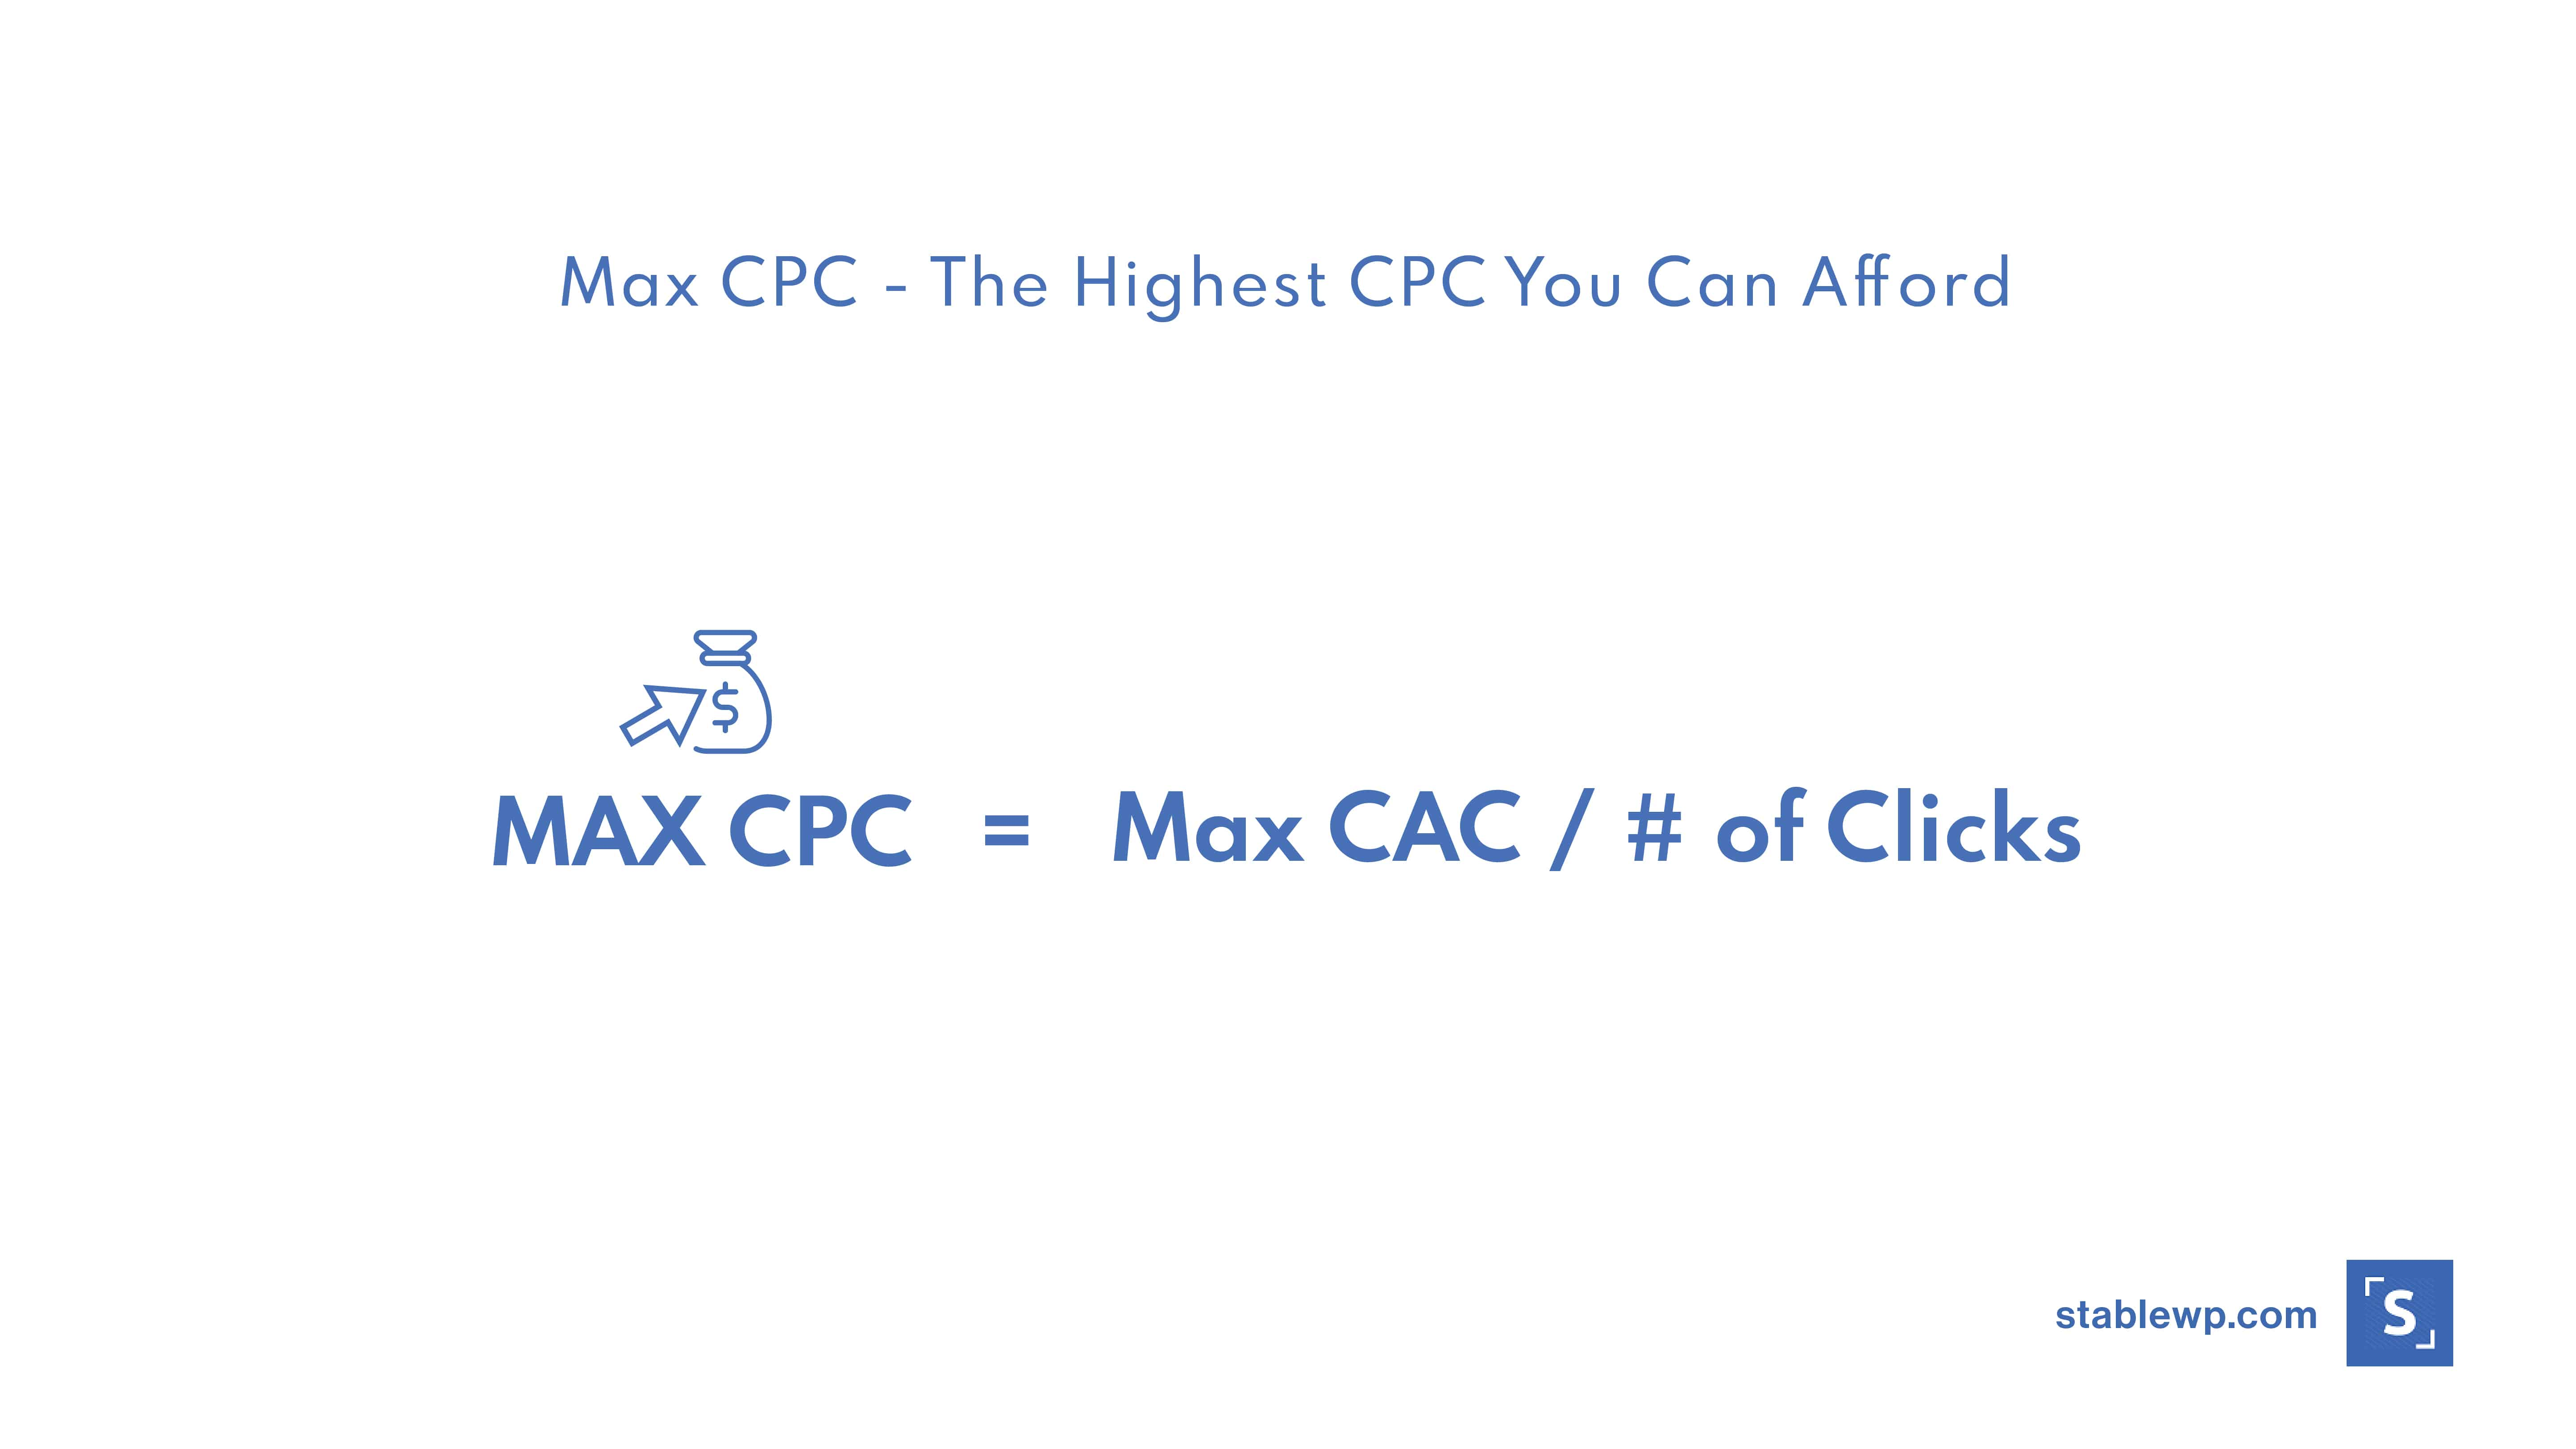 the highest cpc you can afford